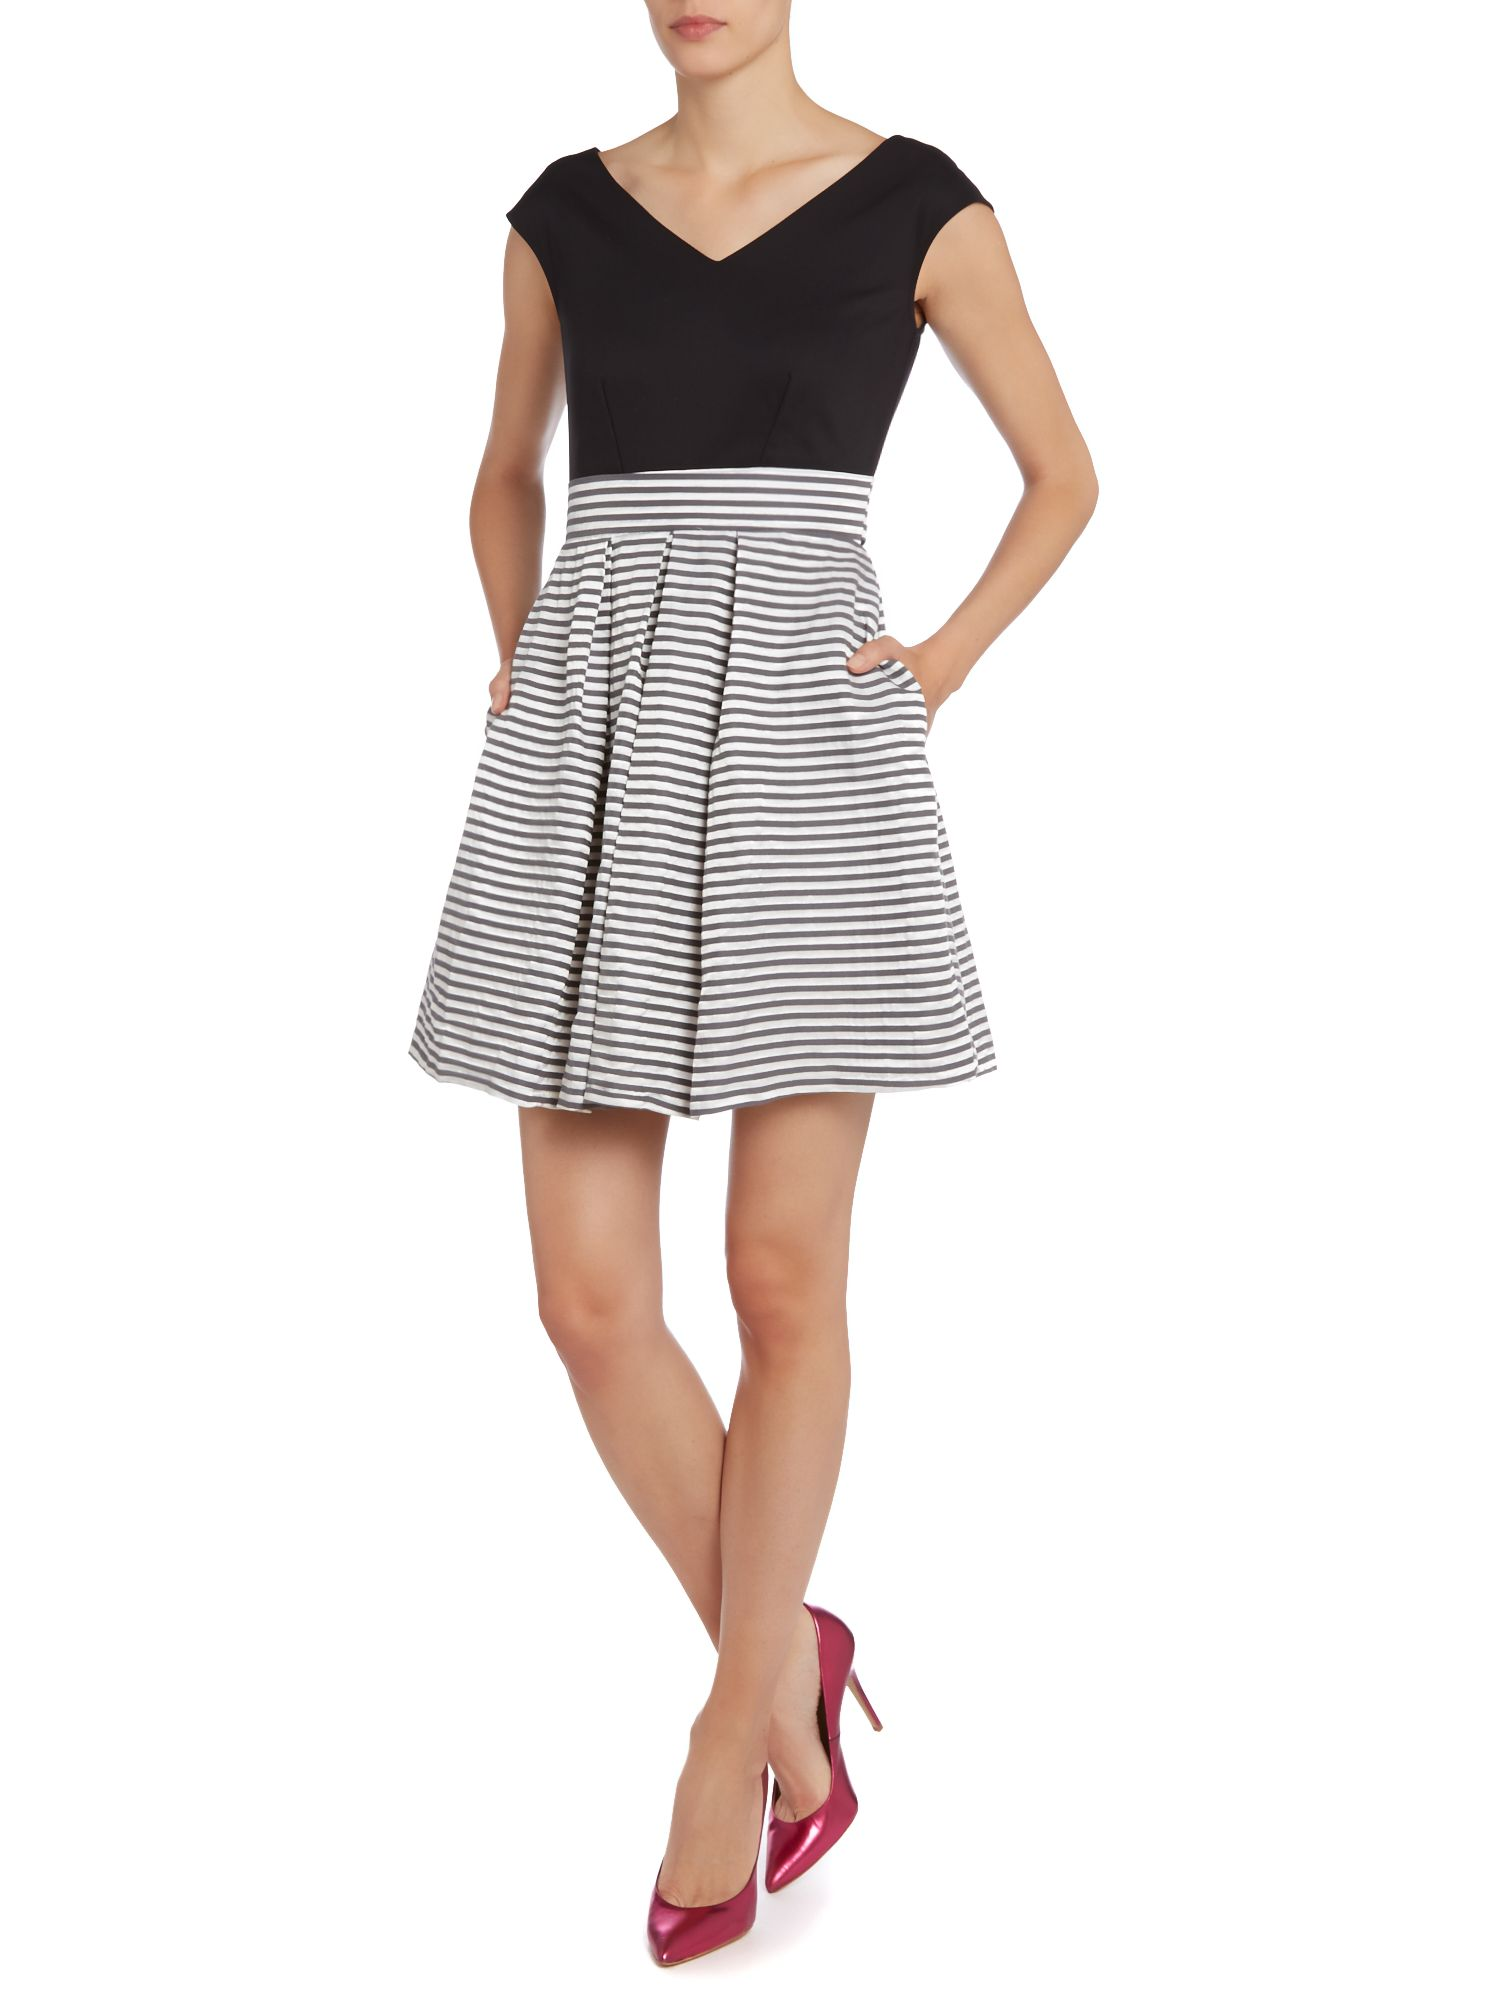 Stripe taffeta contrast dress